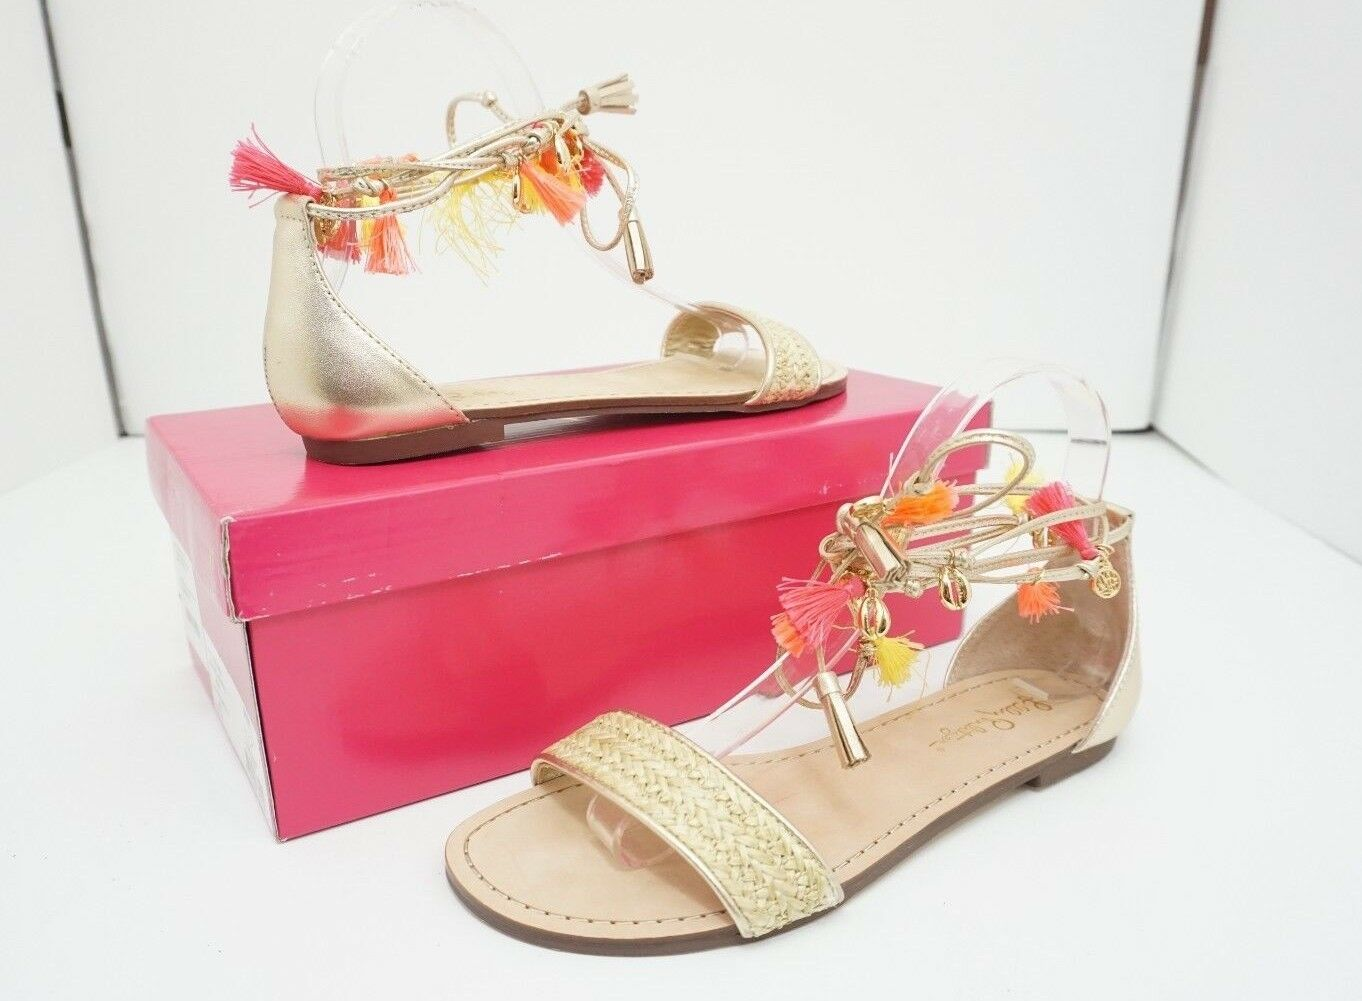 Lilly Lilly Lilly Pulitzer Willa Femmes Flats Sandales Sandale or métallique Taille US 7 m 272f51